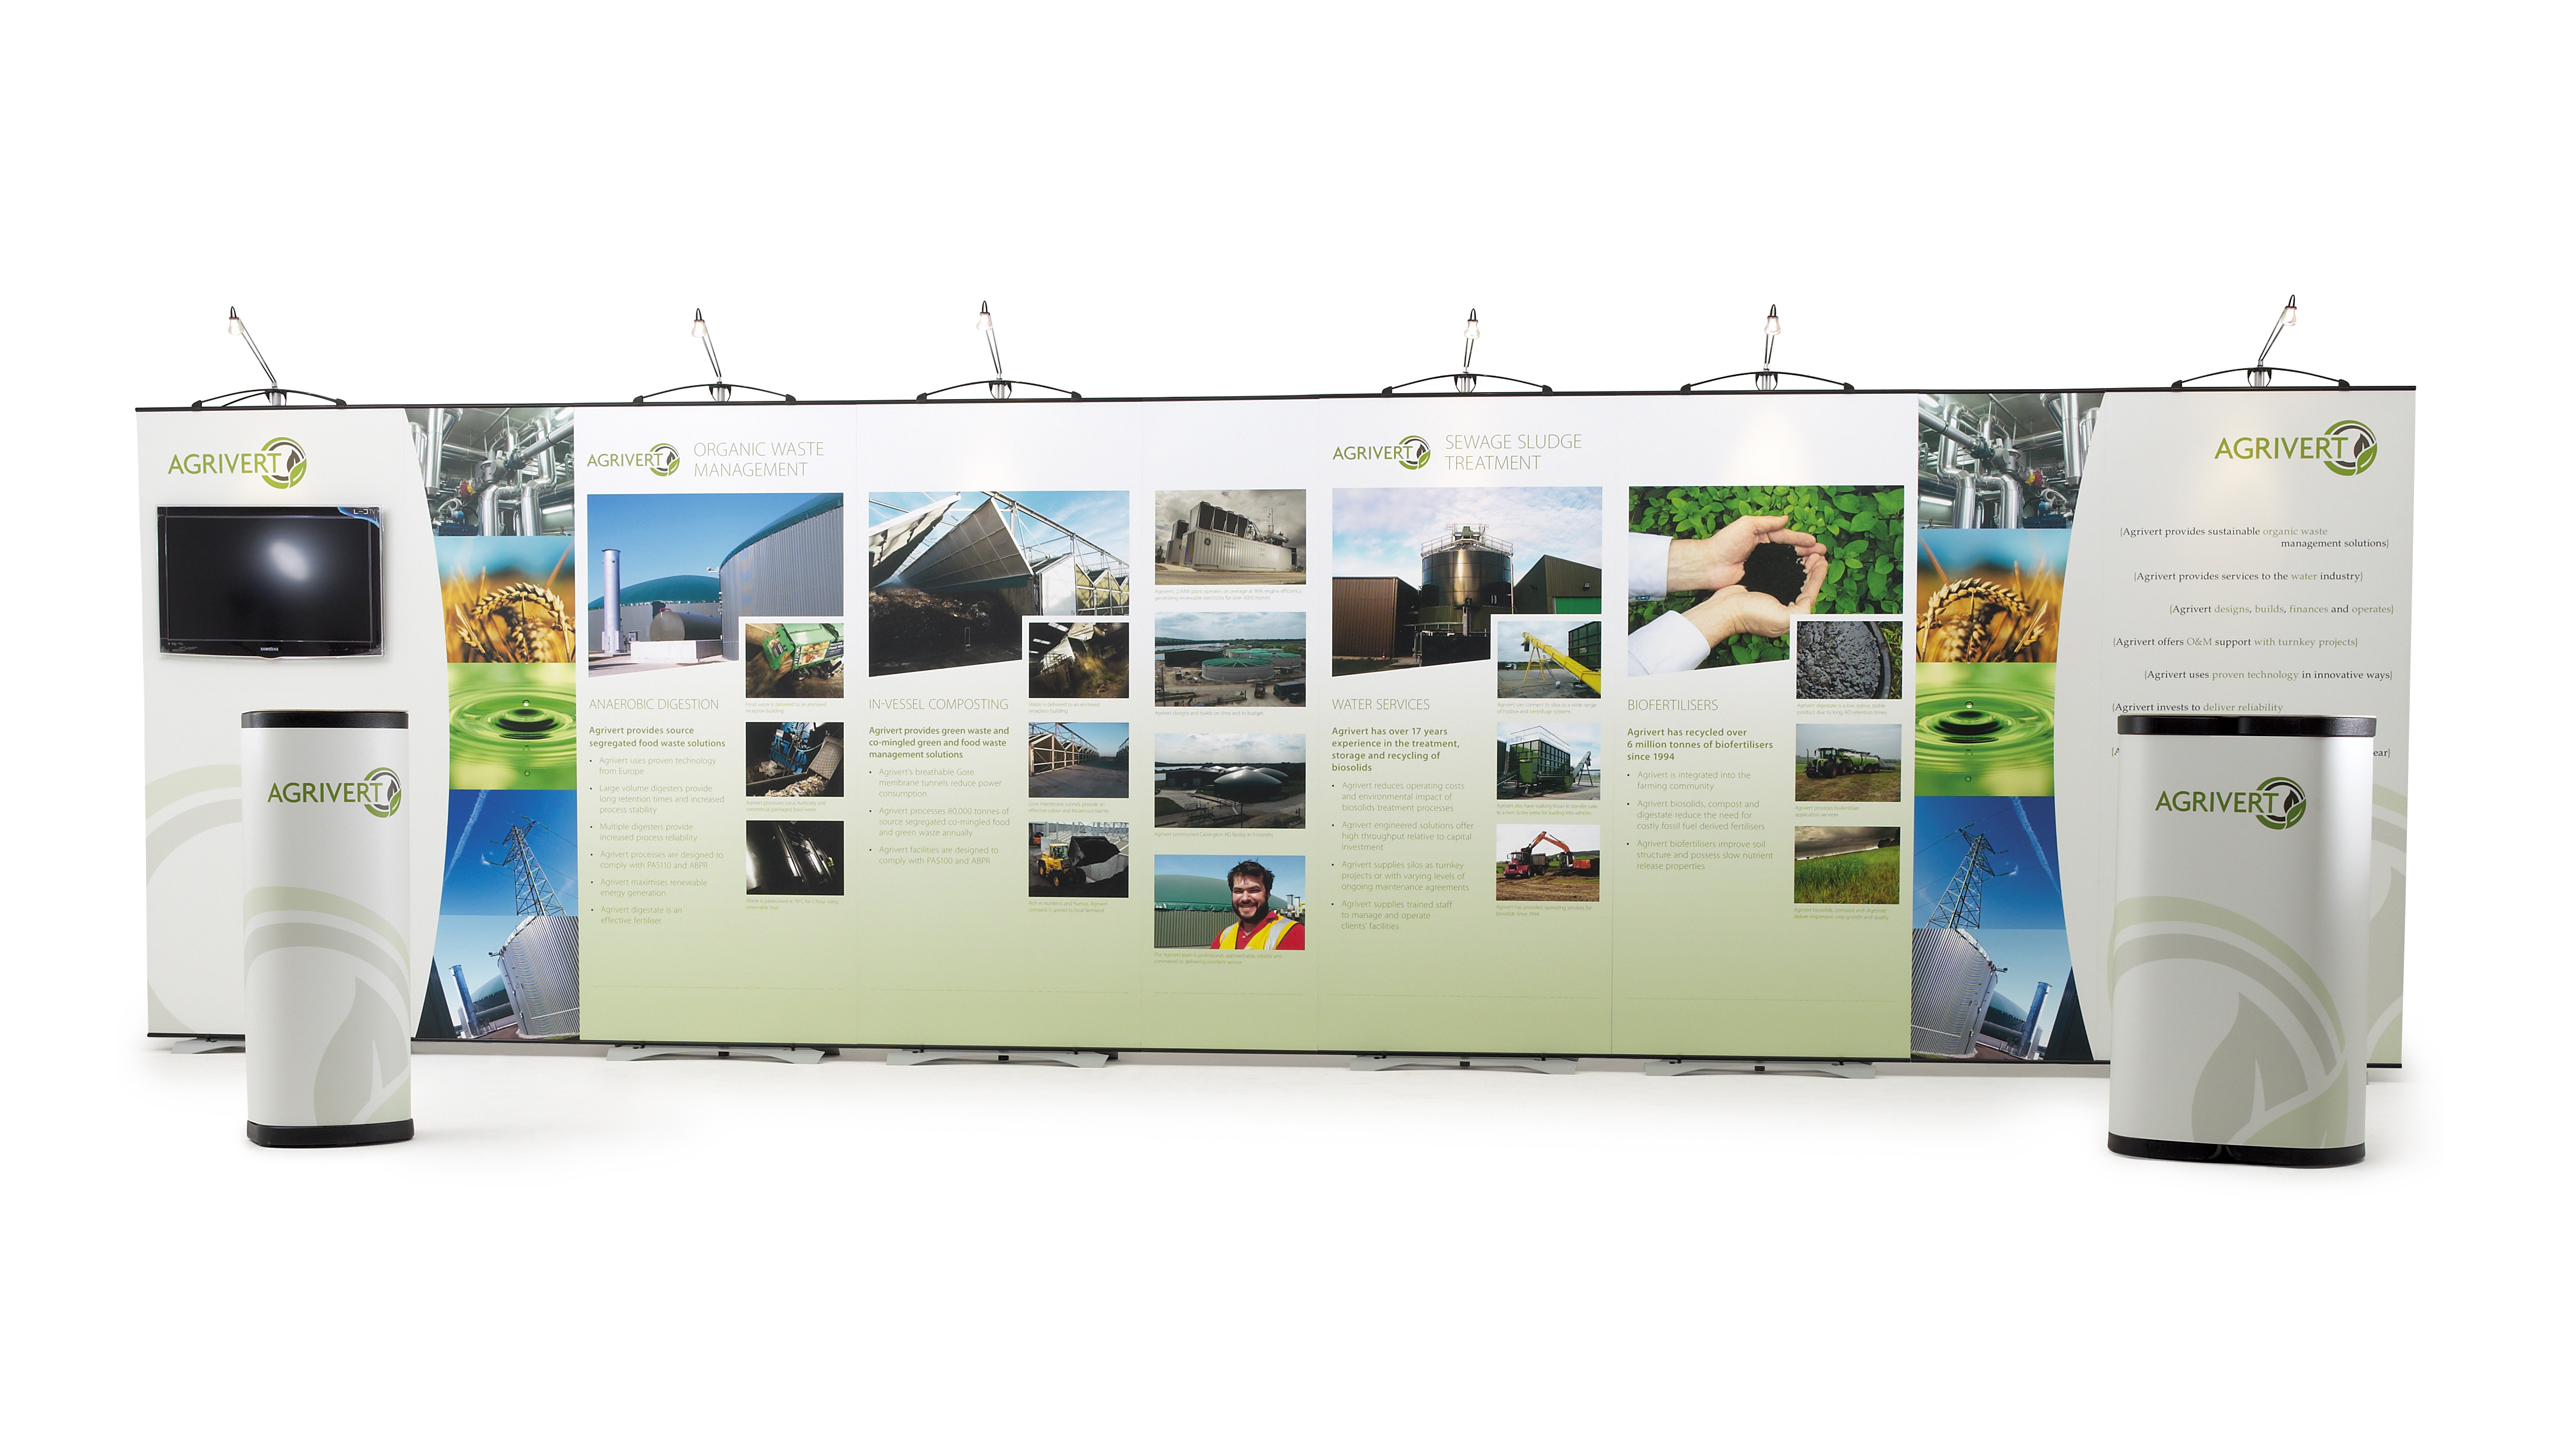 Exhibition Stand Graphics : Exhibition stand agrivert b graphics